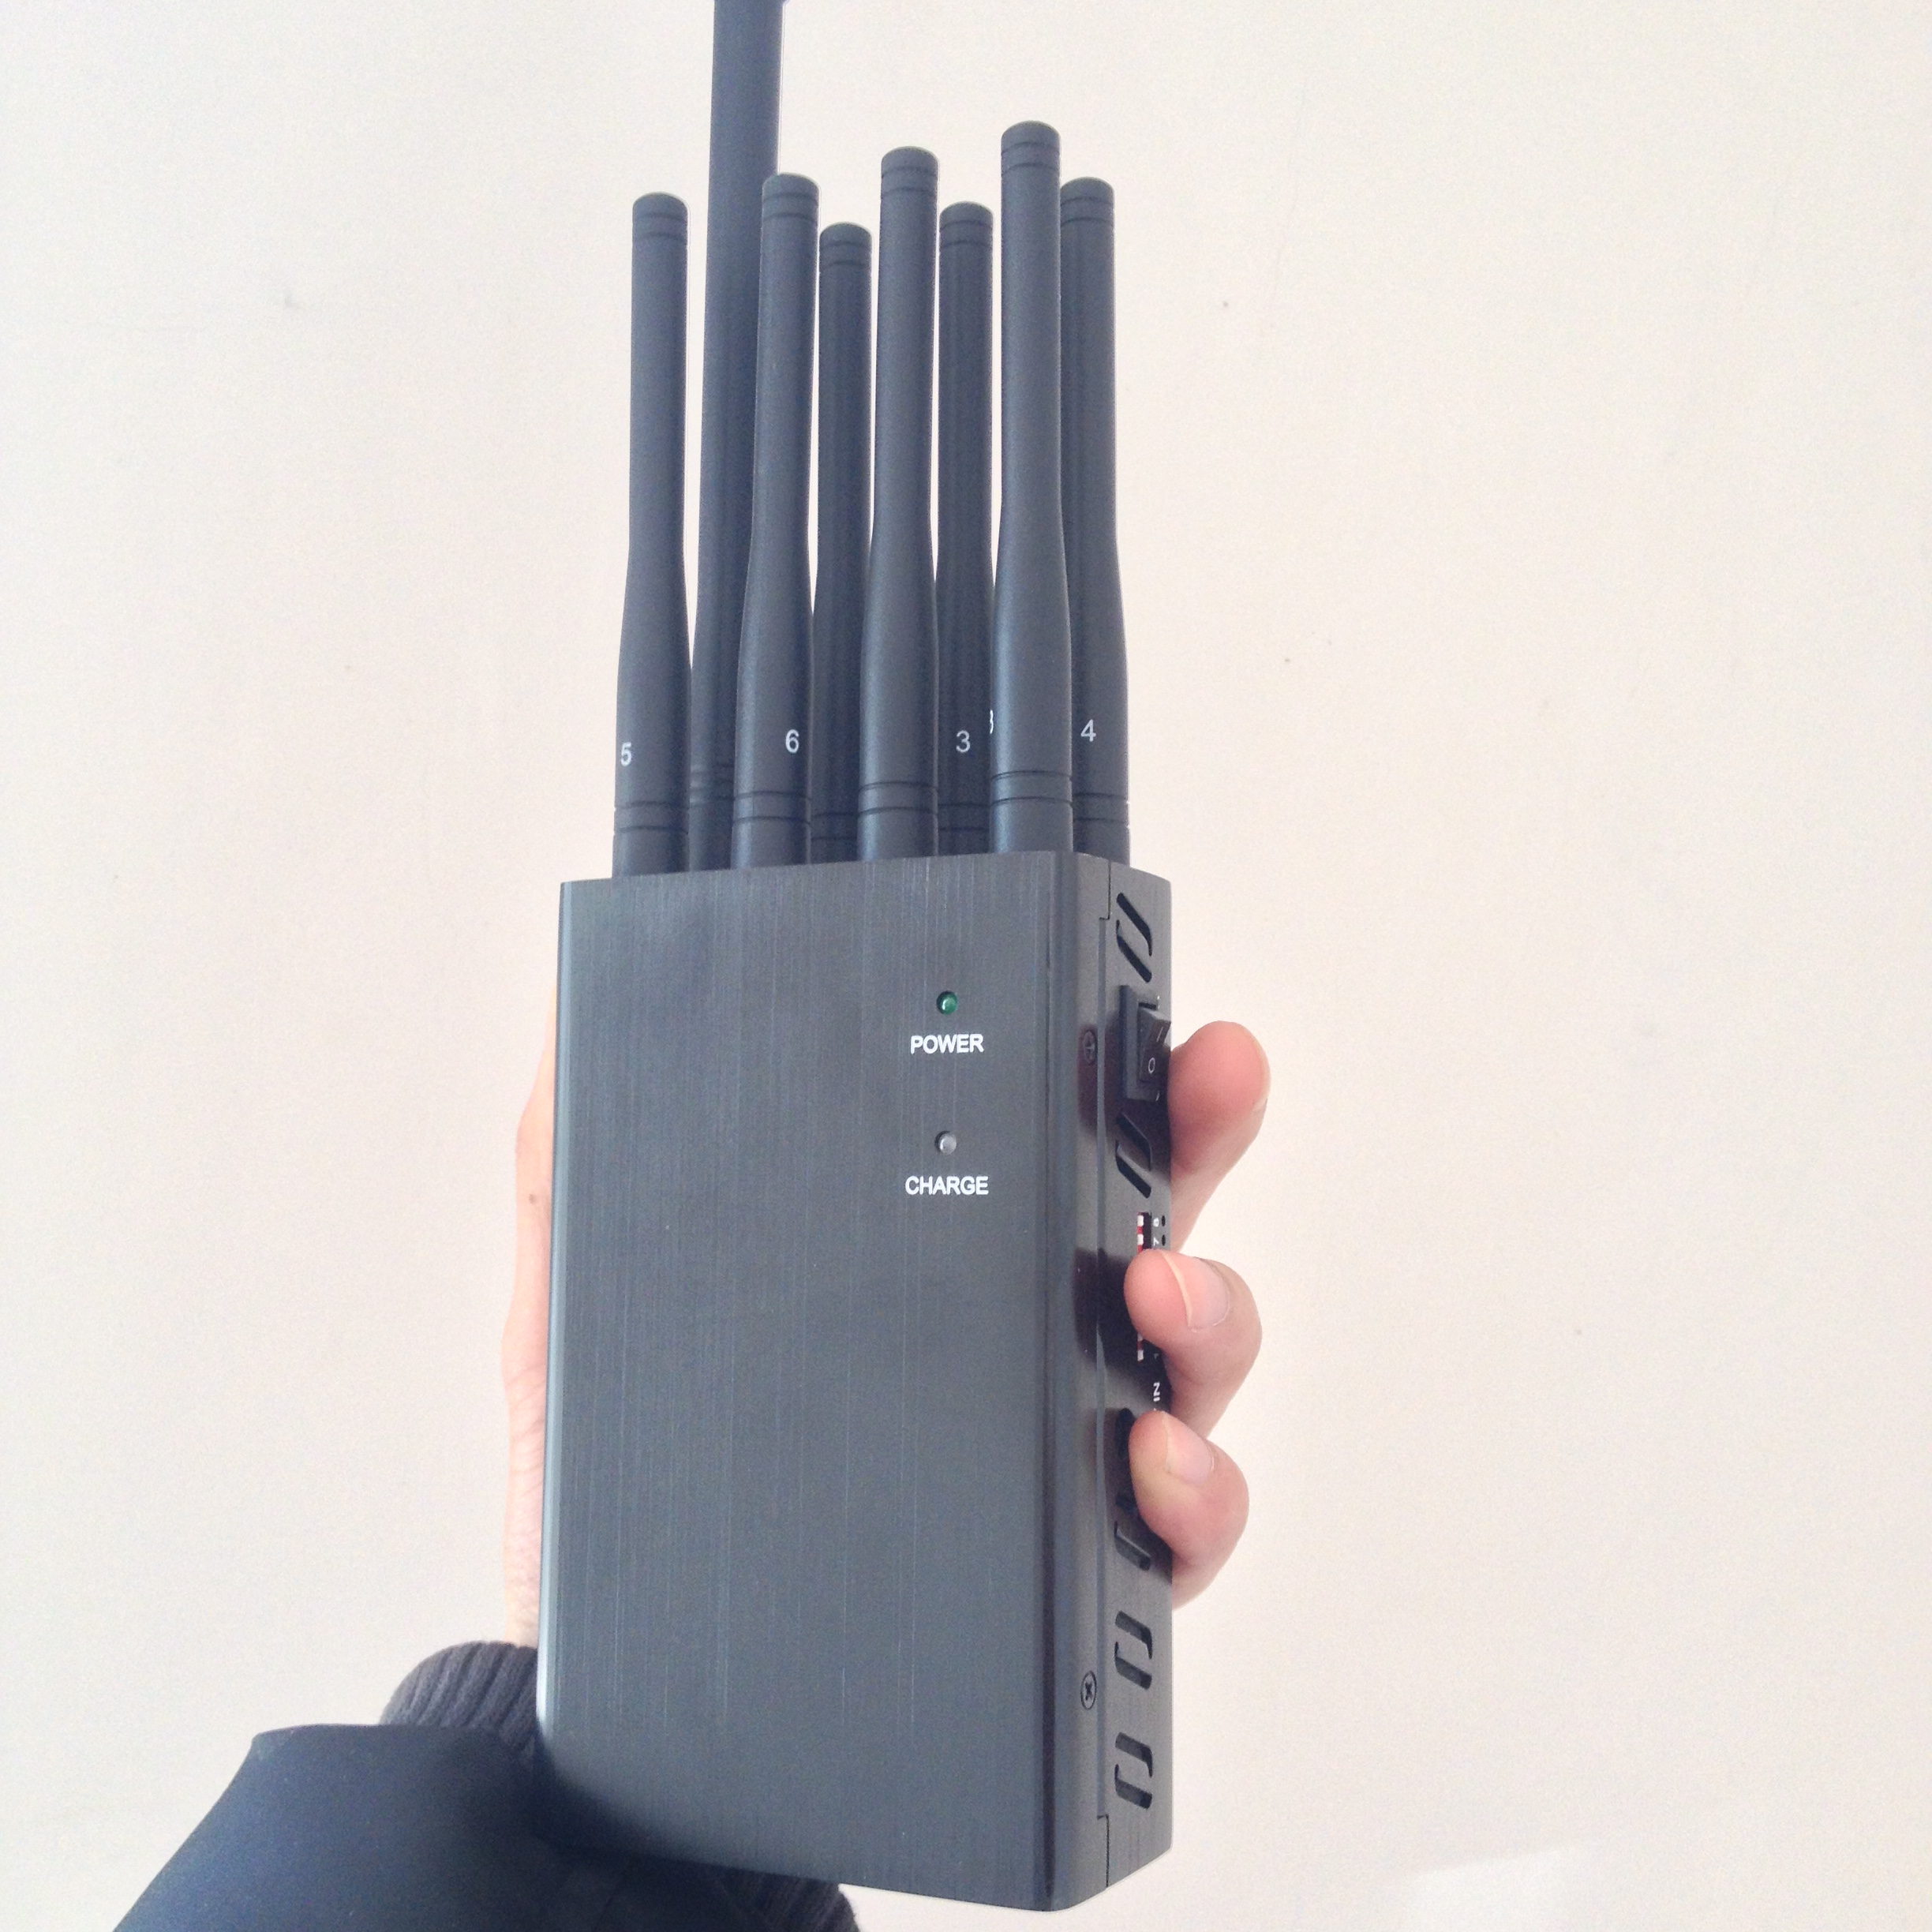 GSM 2G 3G 4G GPS L1 WIFI 2.4GHZ JAMMER (21)